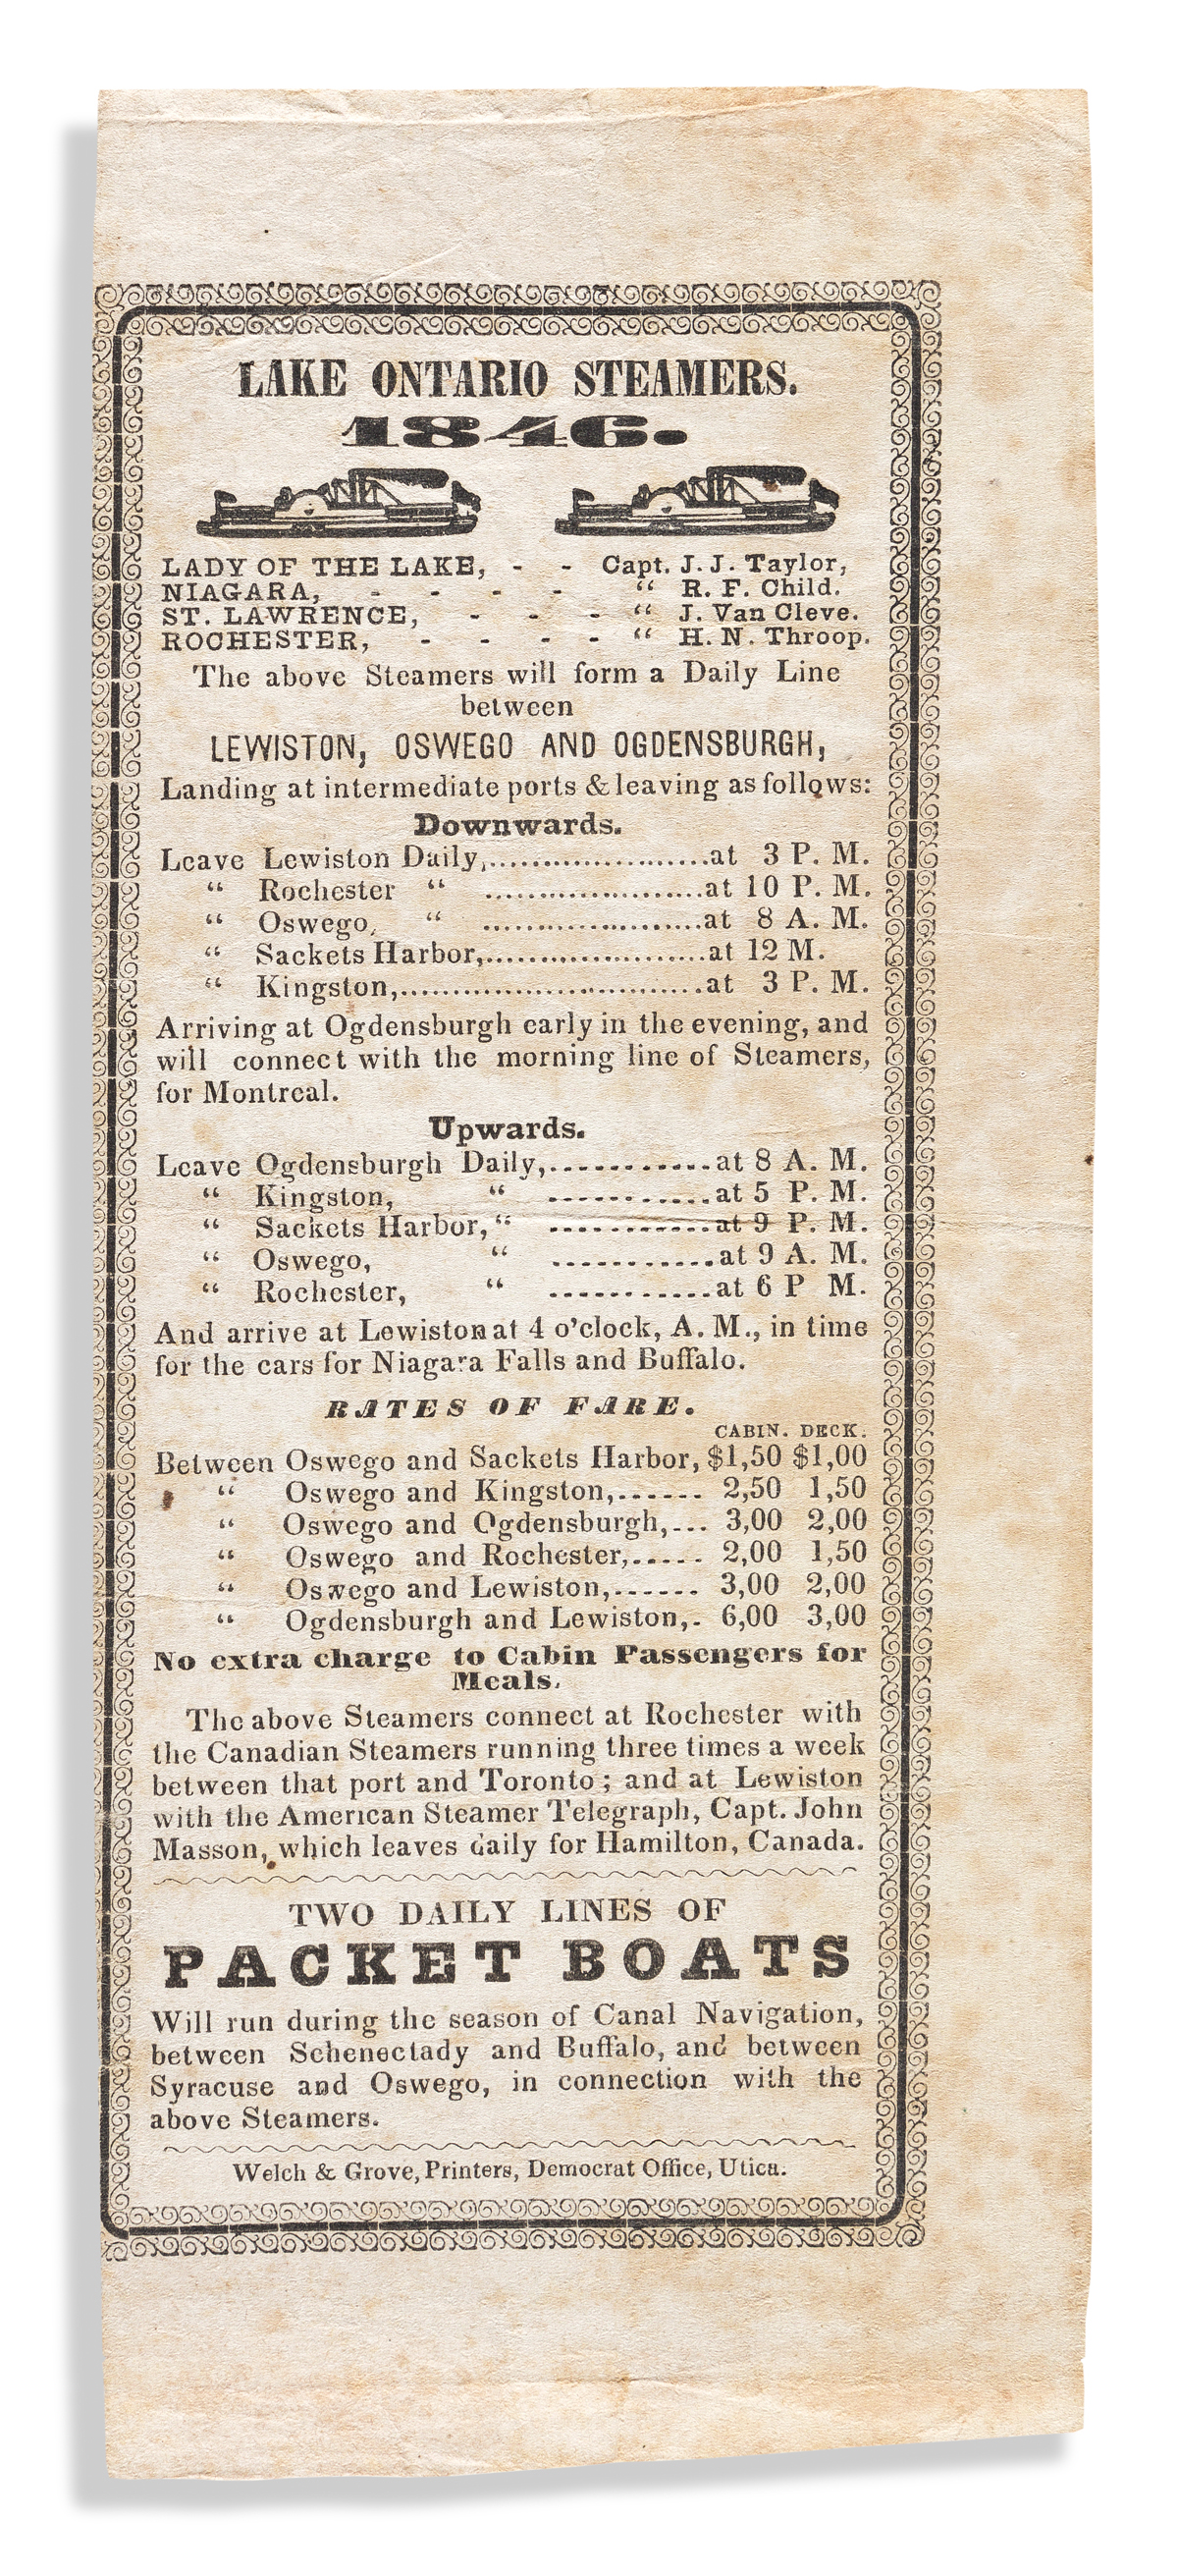 (NEW YORK.) Time-table, fare schedule and information sheet for travel on Lake Ontario in 1846.